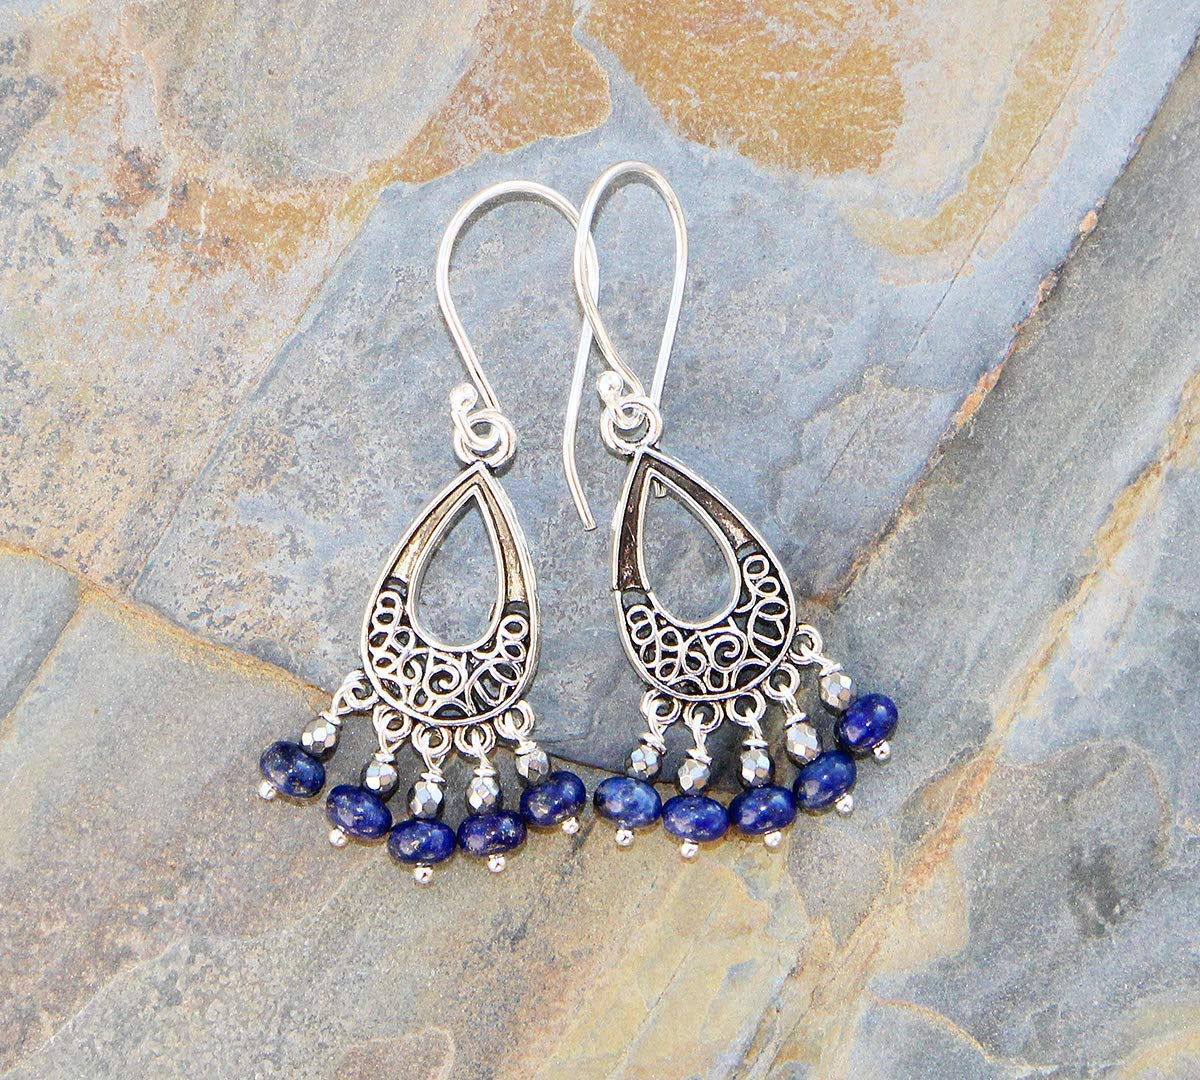 Lapis Lazuli Earrings, Blue Earrings, Chandelier Earrings, Natural Stone Earrings, Dangly Earrings, Filigree Earrings, Bohemian Earrings